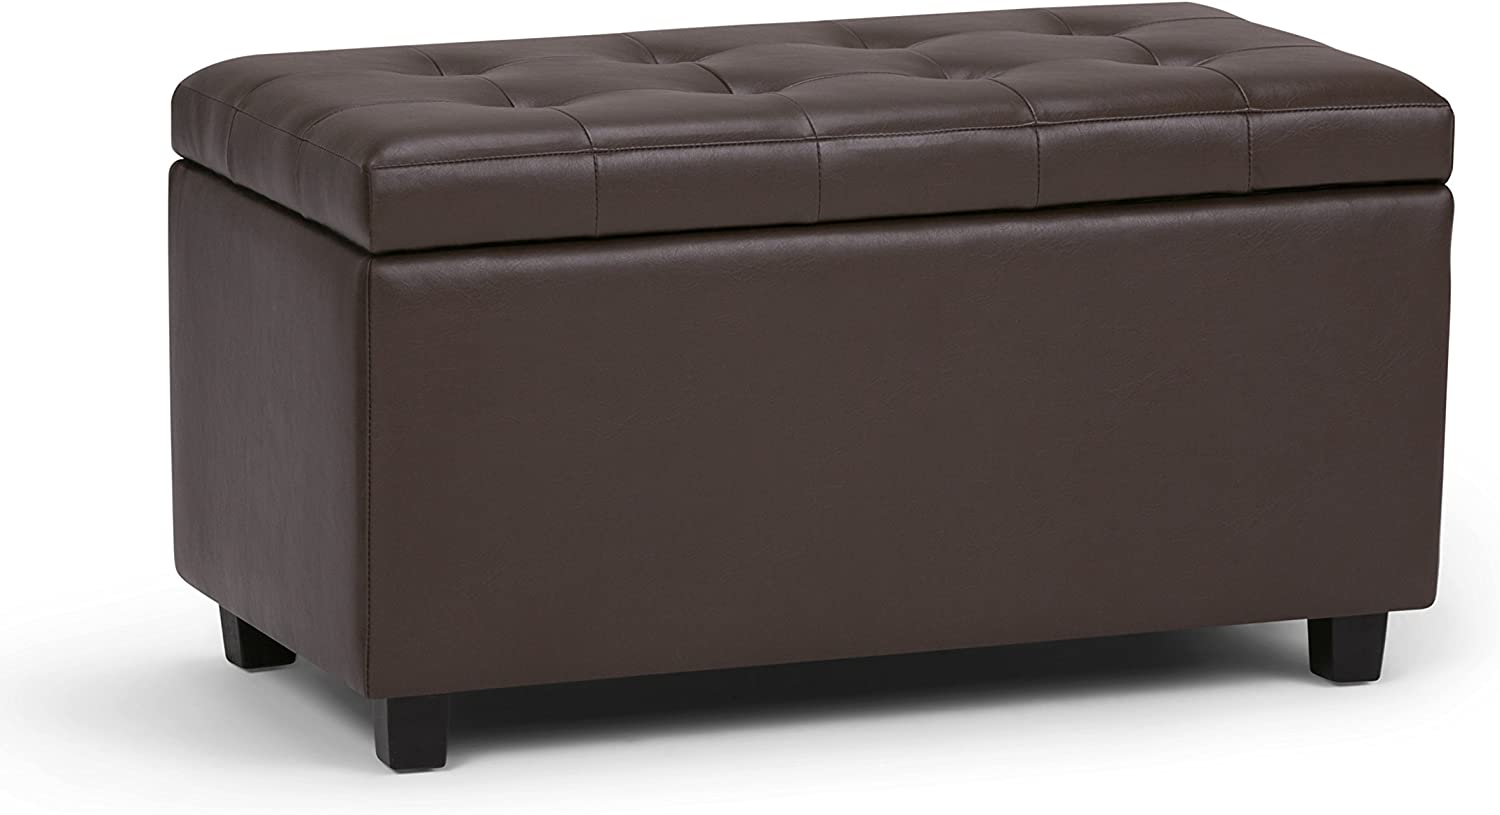 Simpli Home Cosmopolitan 34 inch Wide Rectangle Lift Top Storage Ottoman in Upholstered Chocolate Brown Tufted Faux Leather, Footrest Stool, Coffee Table for the Living Room, Bedroom and Kids Room